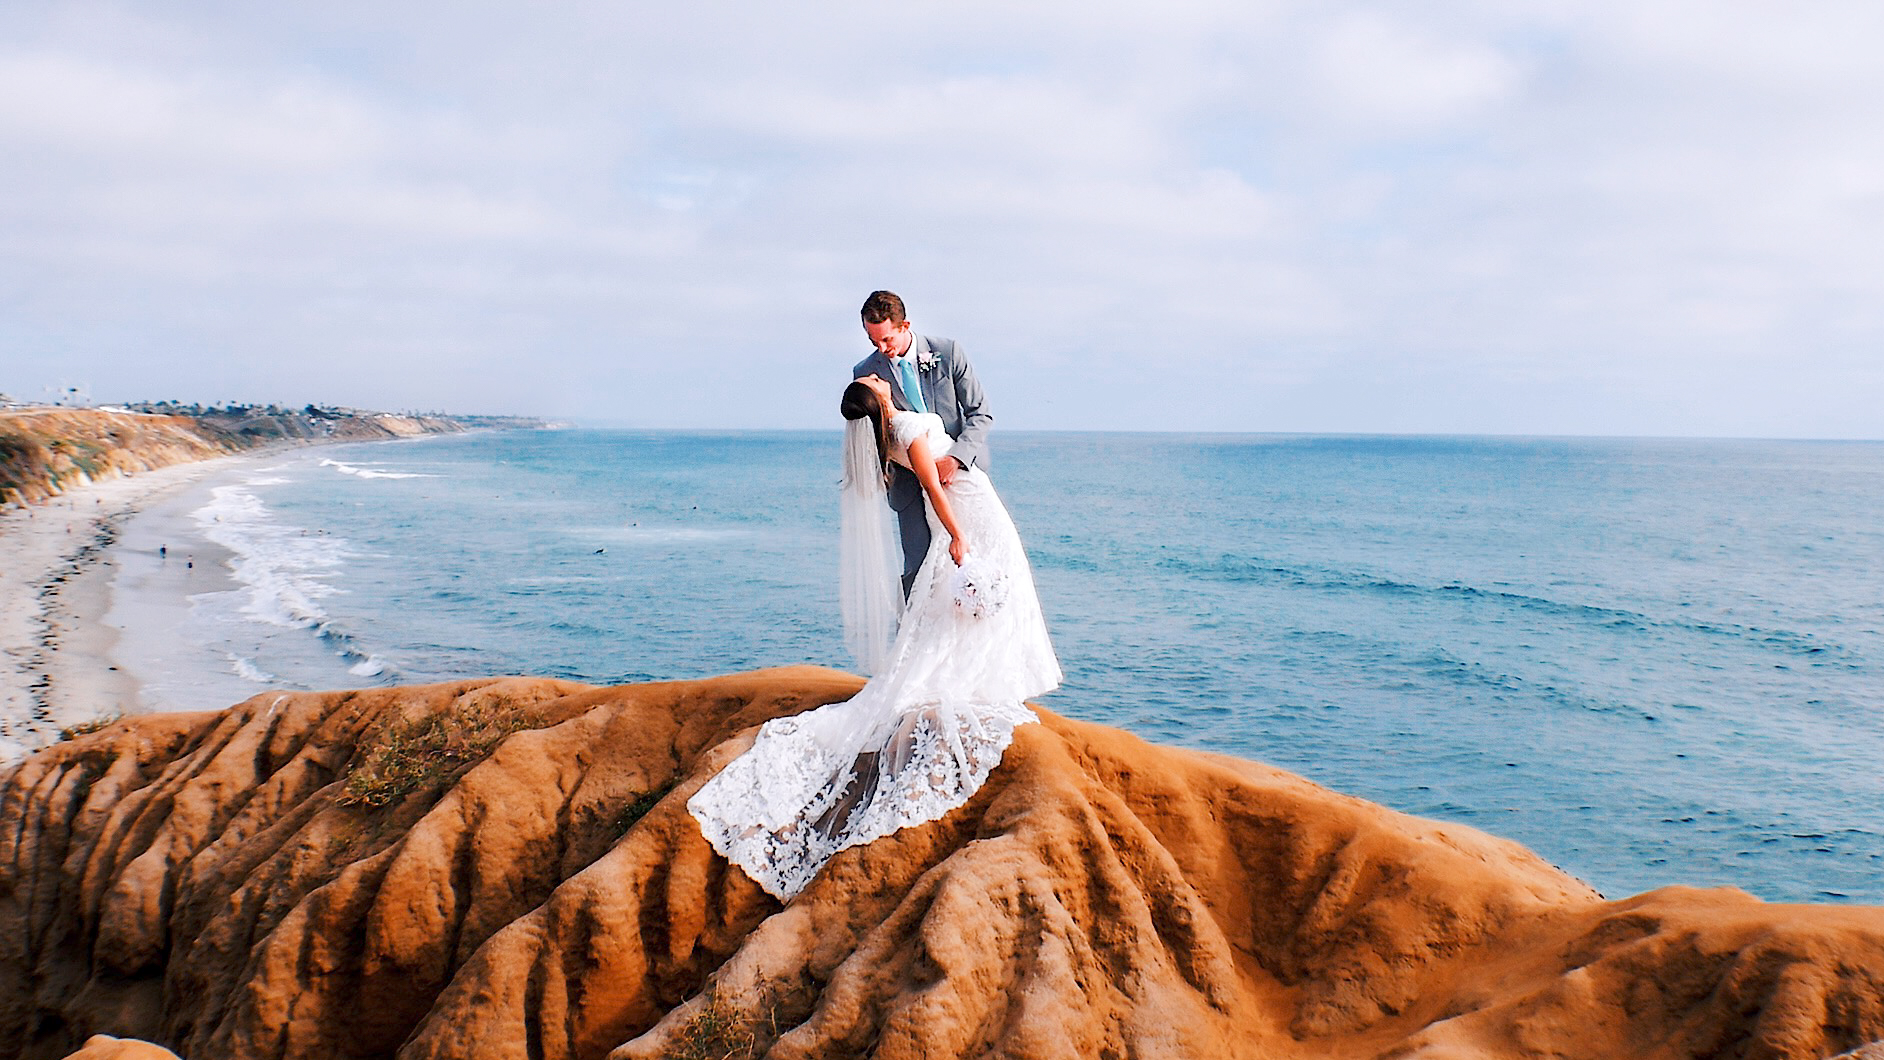 Treisy + James | San Diego, California | San Diego